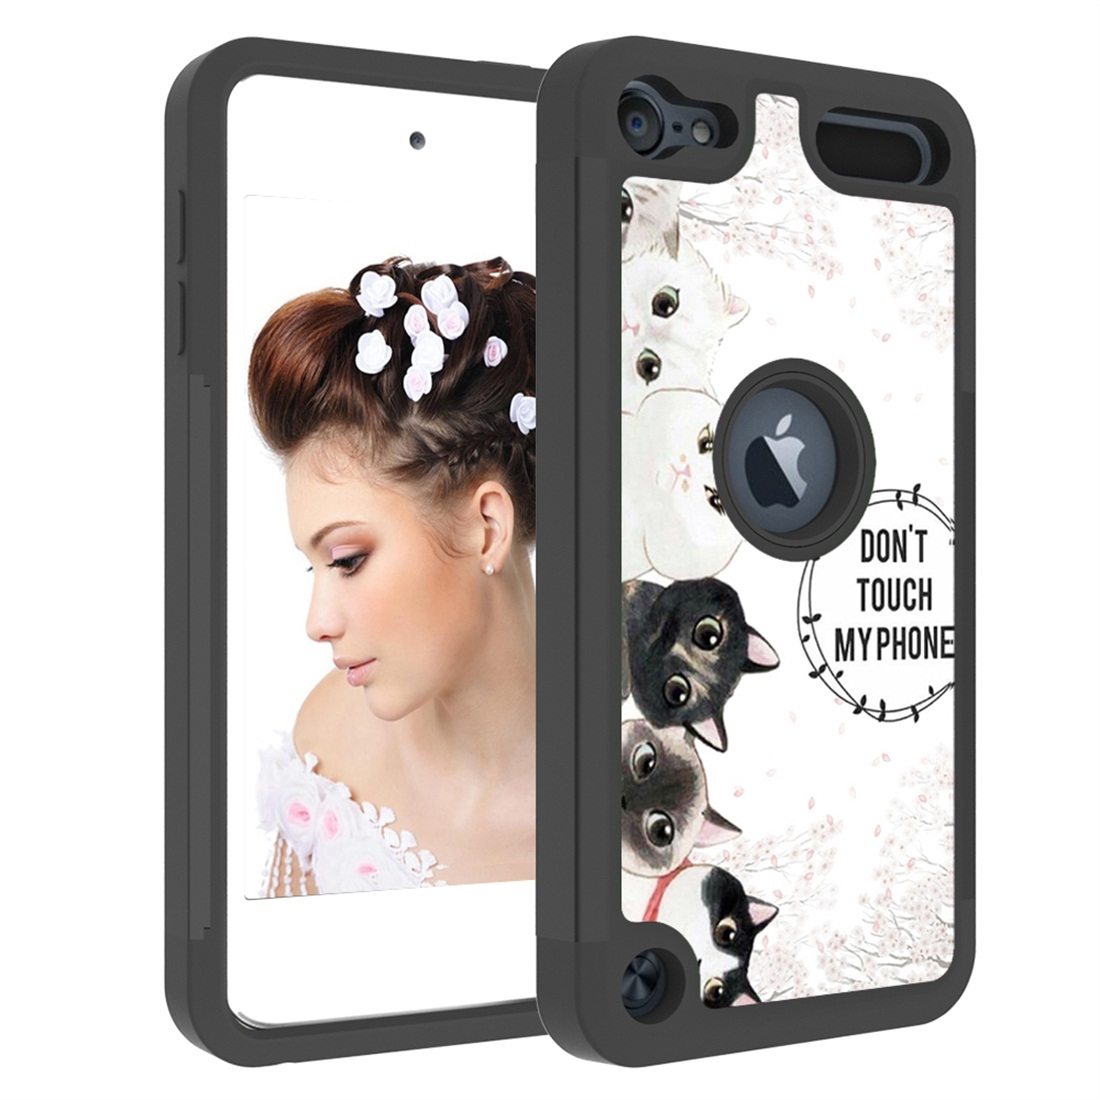 Colorful  Design PC/Protective Durable Casing for iPod touch 5/ 6/ 7 (2019) (Five Cats)